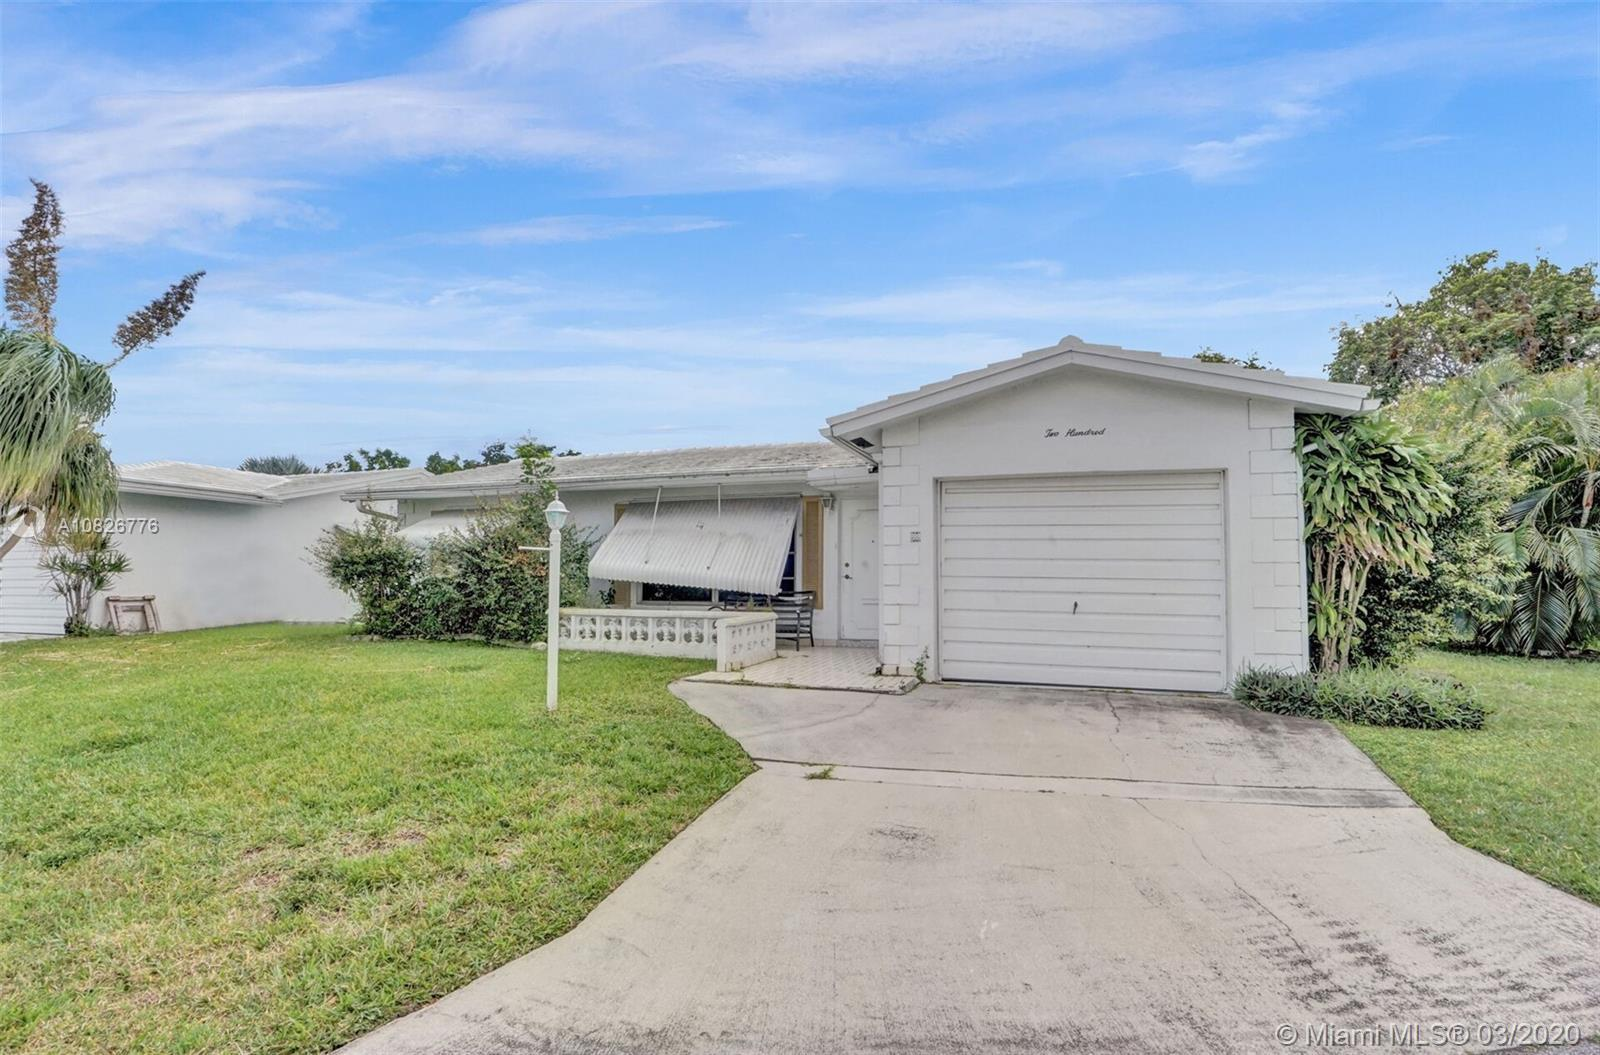 BEAUTIFUL 2 BEDROOM 2 BATHROOM SINGLE FAMILY HOME IN THE DESIRABLE 55+ COMMUNITY OF LEISUREVILLE. PR